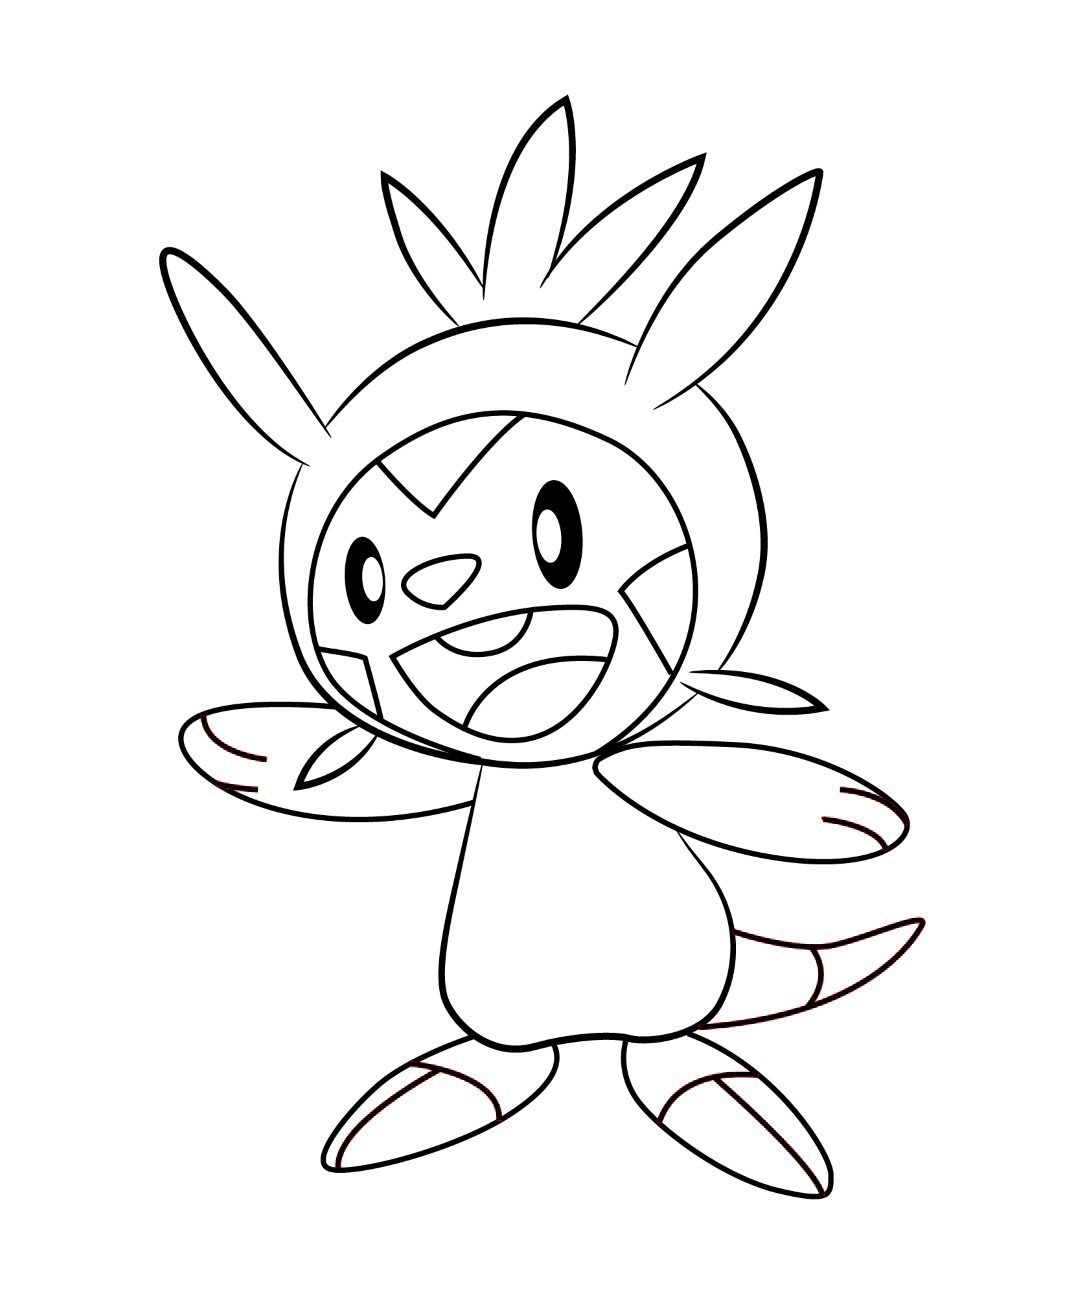 chespin cute coloring pages - photo#3